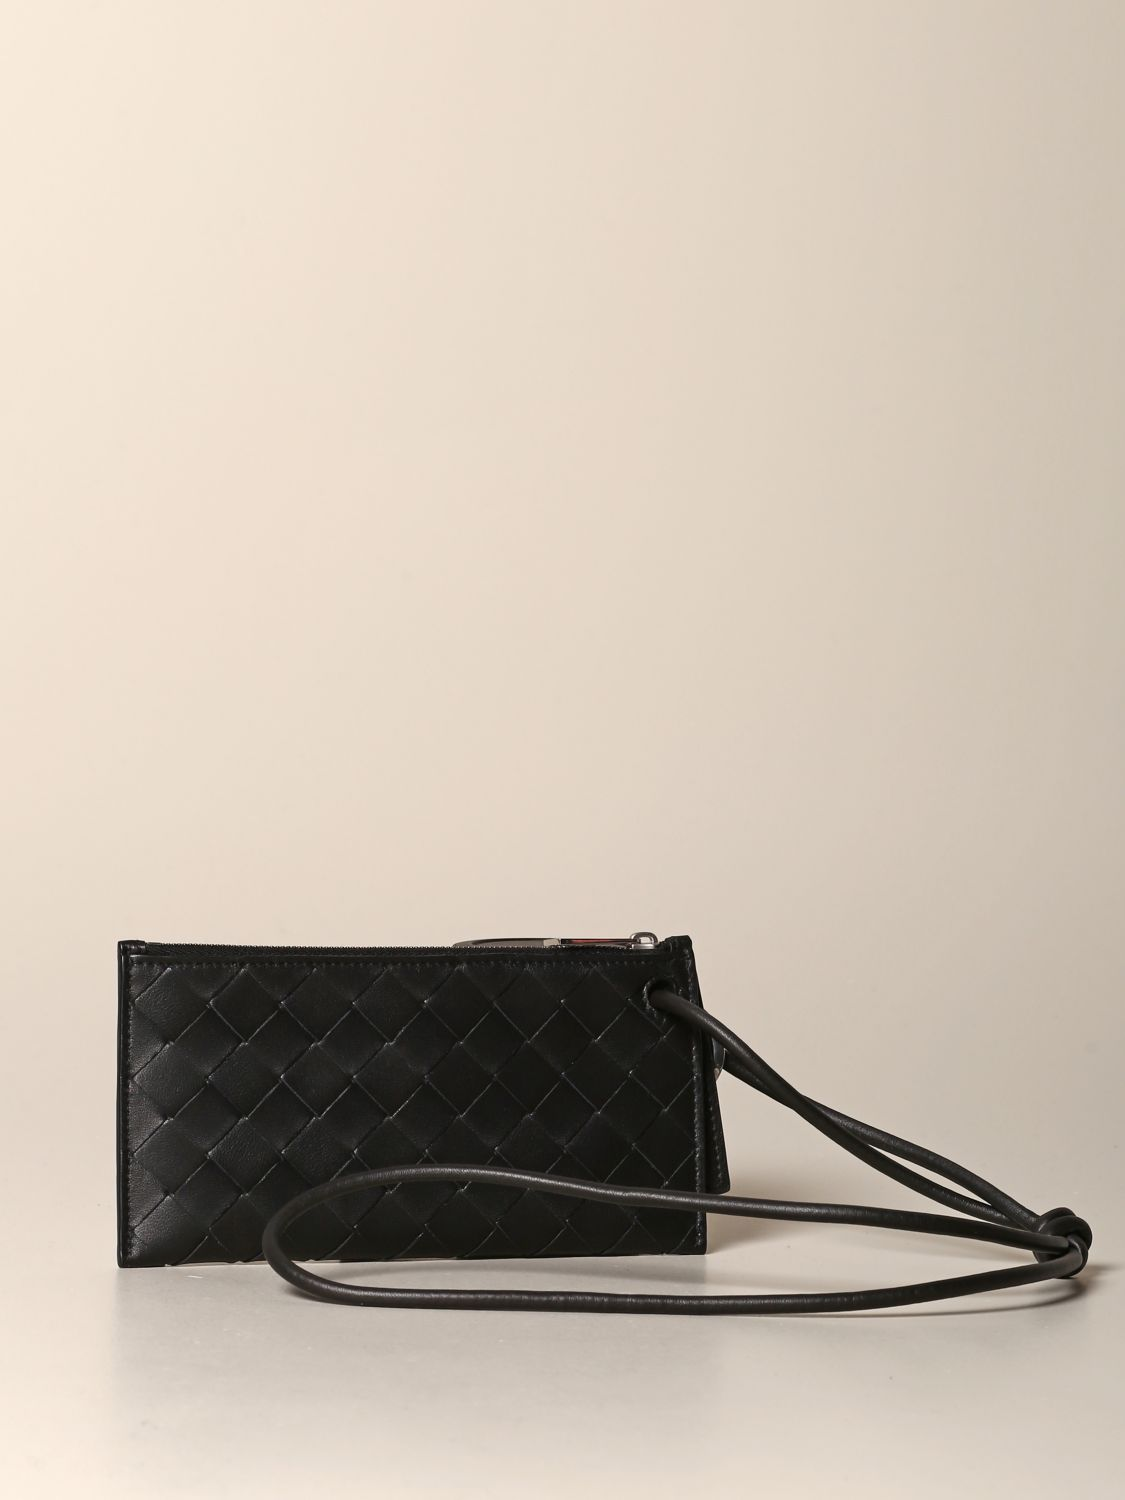 Briefcase Bottega Veneta: Bottega Veneta briefcase in woven leather black 2